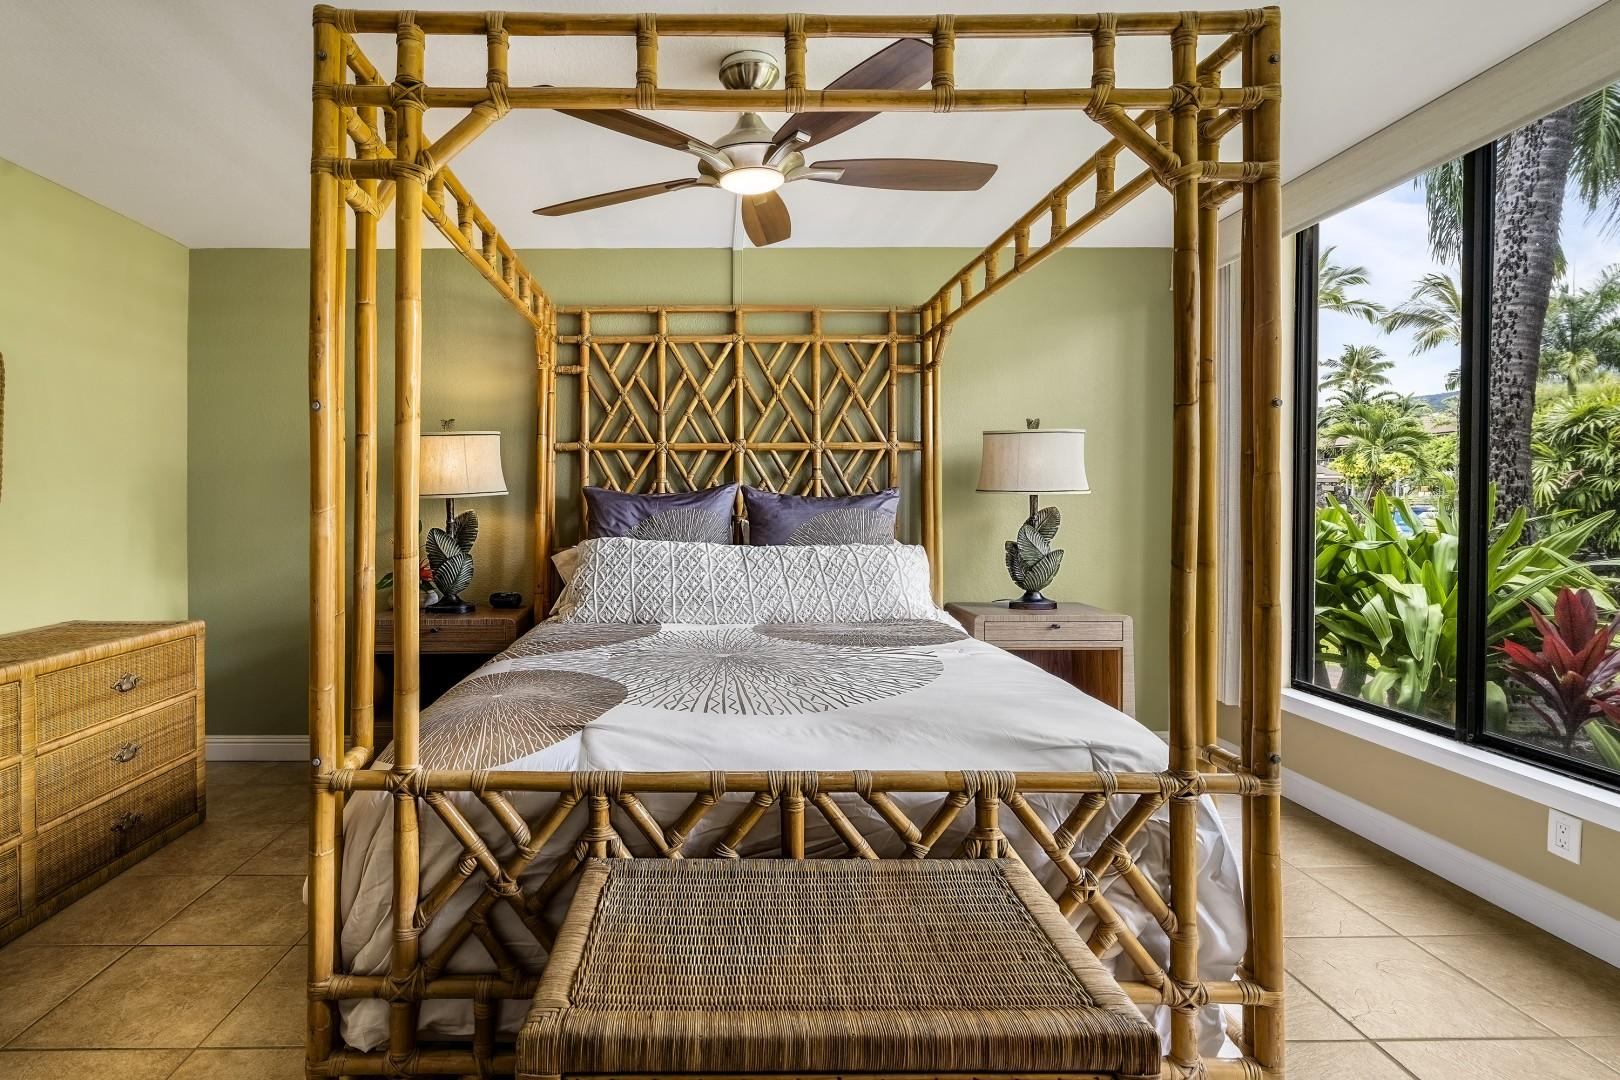 Guest bedroom equipped with Queen bed, and garden views